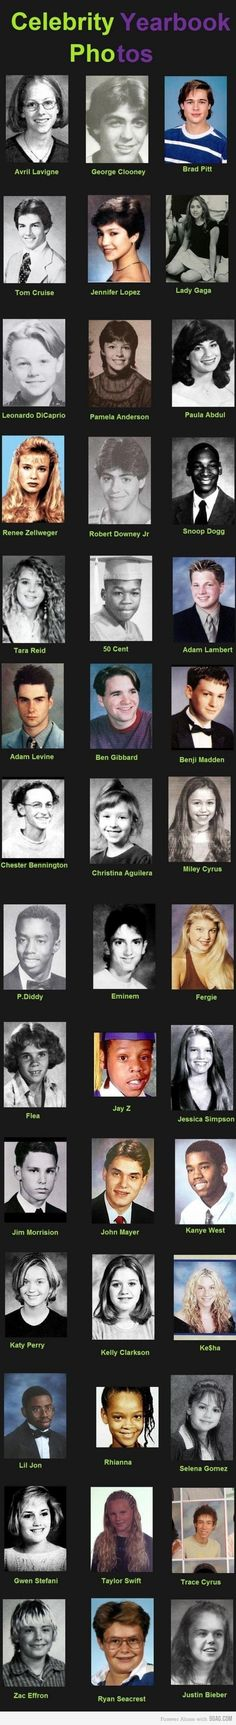 Celebrity Yearbook Photos. So there is hope!! I love the JB one!! Hahaha.......